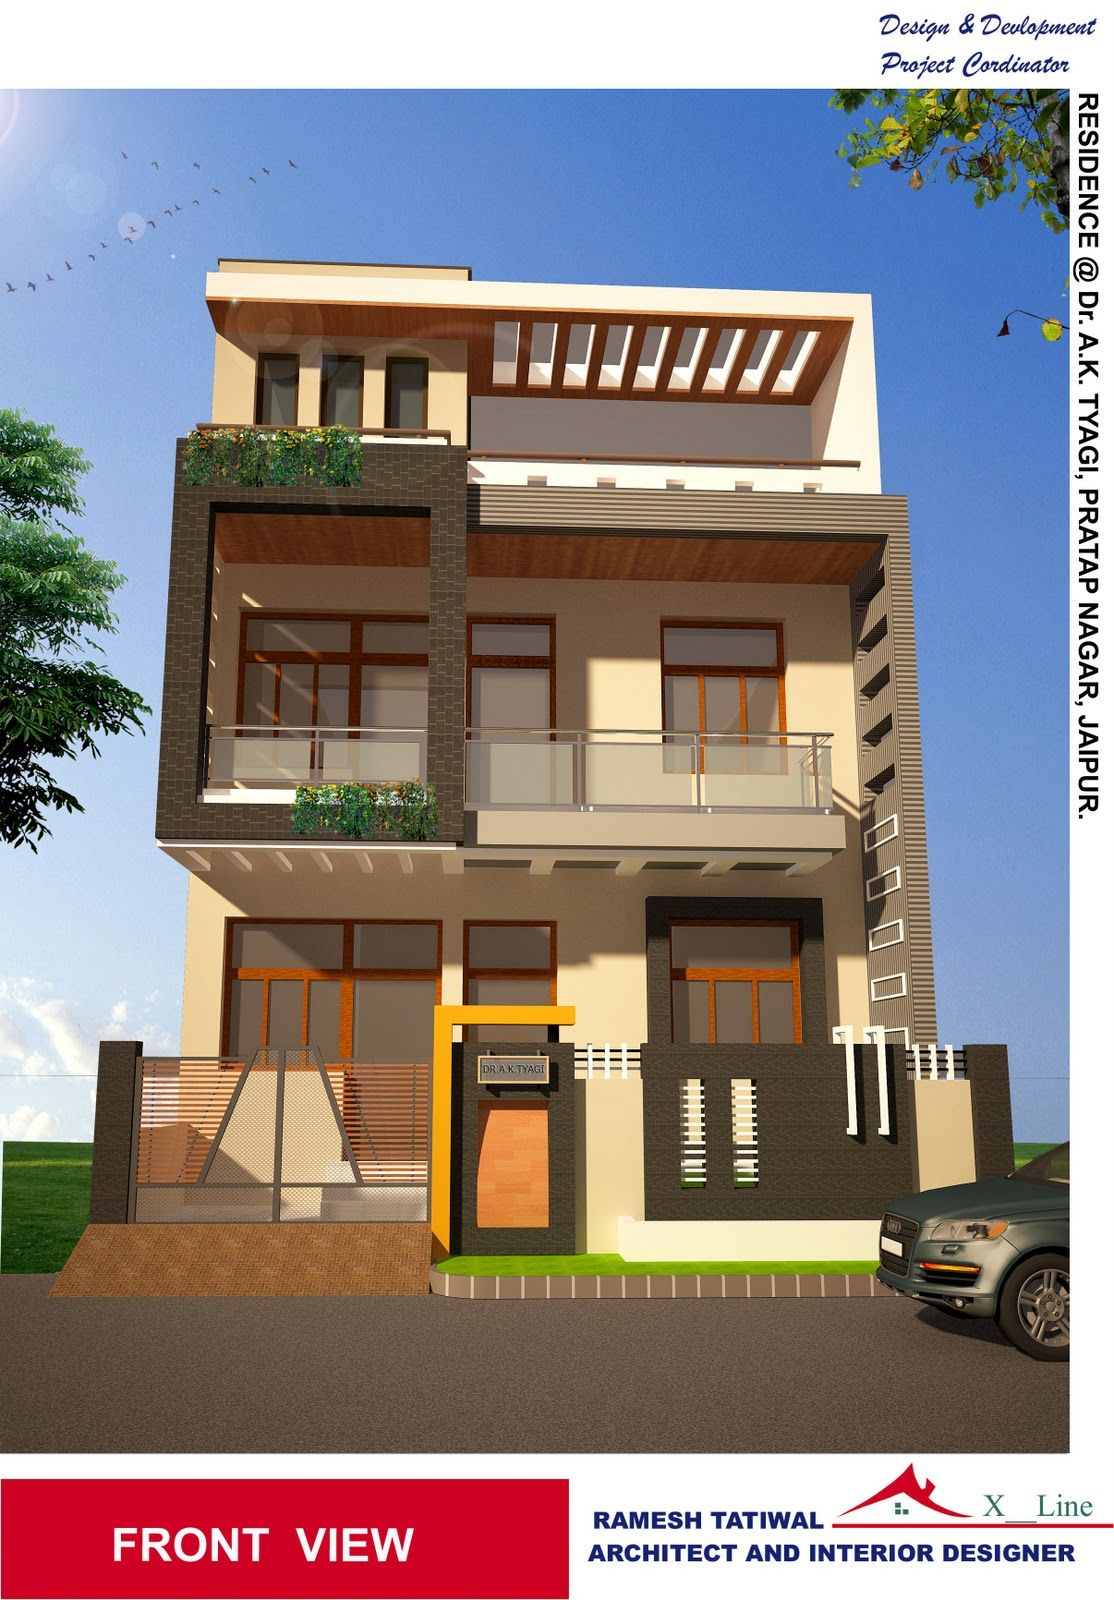 Housedesigns modern indian home architecture design from for House plans indian style